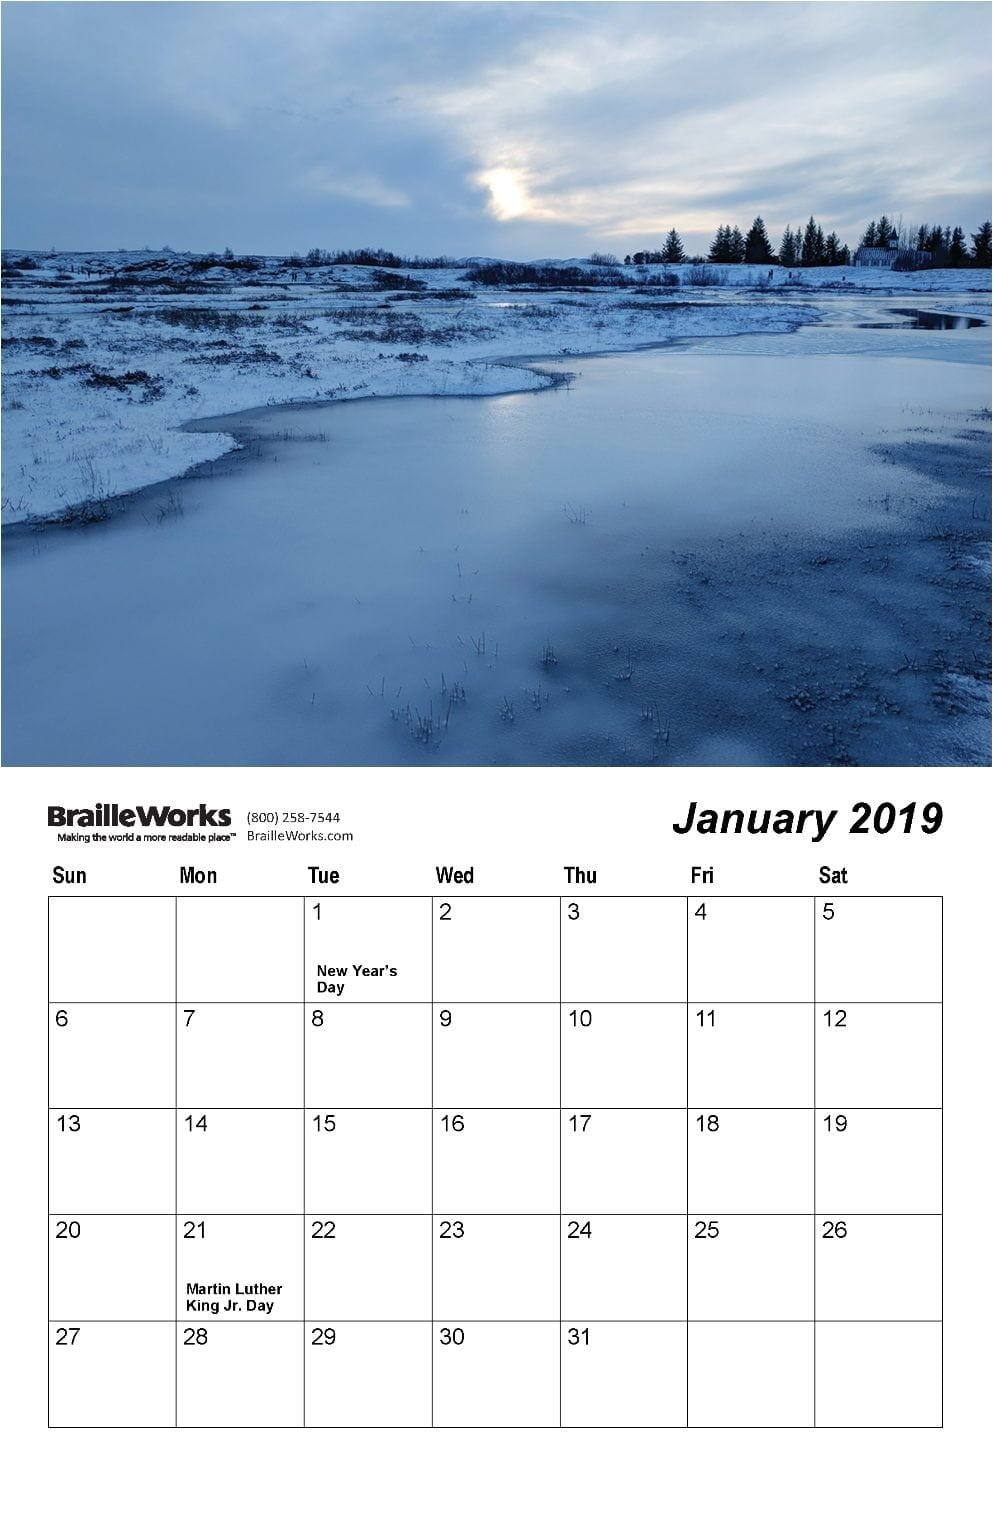 Braille Calendars - Attractive And Accessible - Braille Works U Michigan Calendar 2019